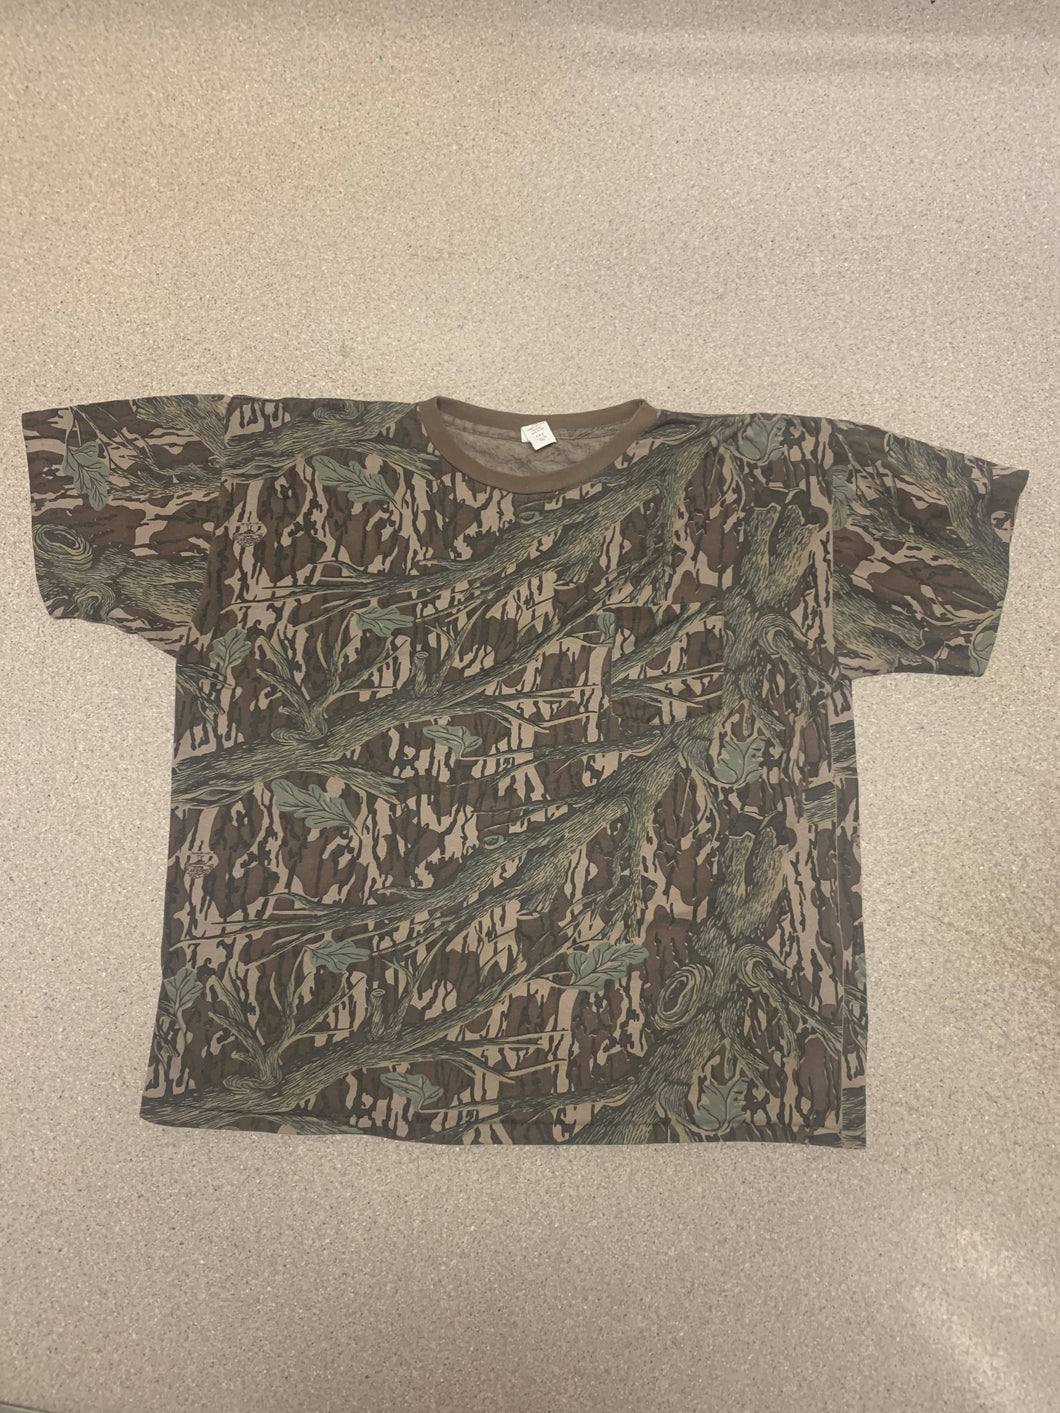 Mossy Oak Tree Stand Pocket Tee (L/XL)